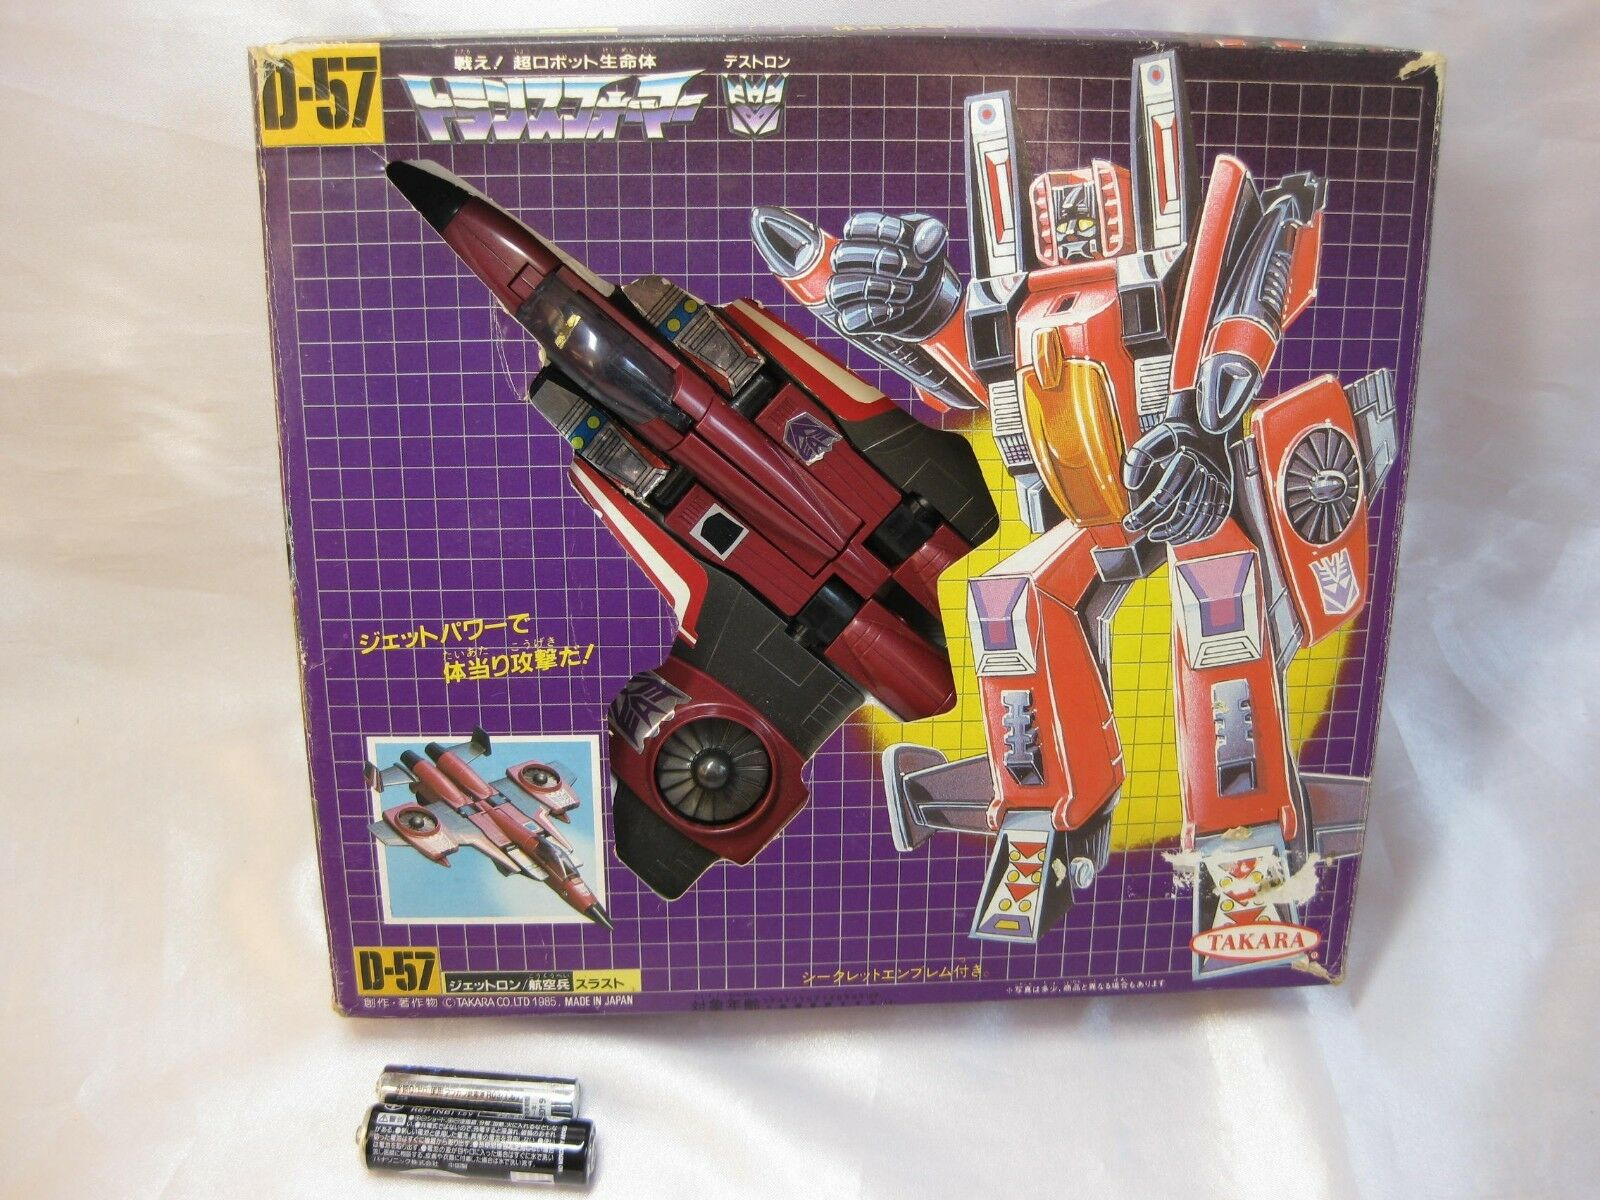 Very Rare Trans formers G1 D-57 Thrust 1985 vintage Takara  JAPAN